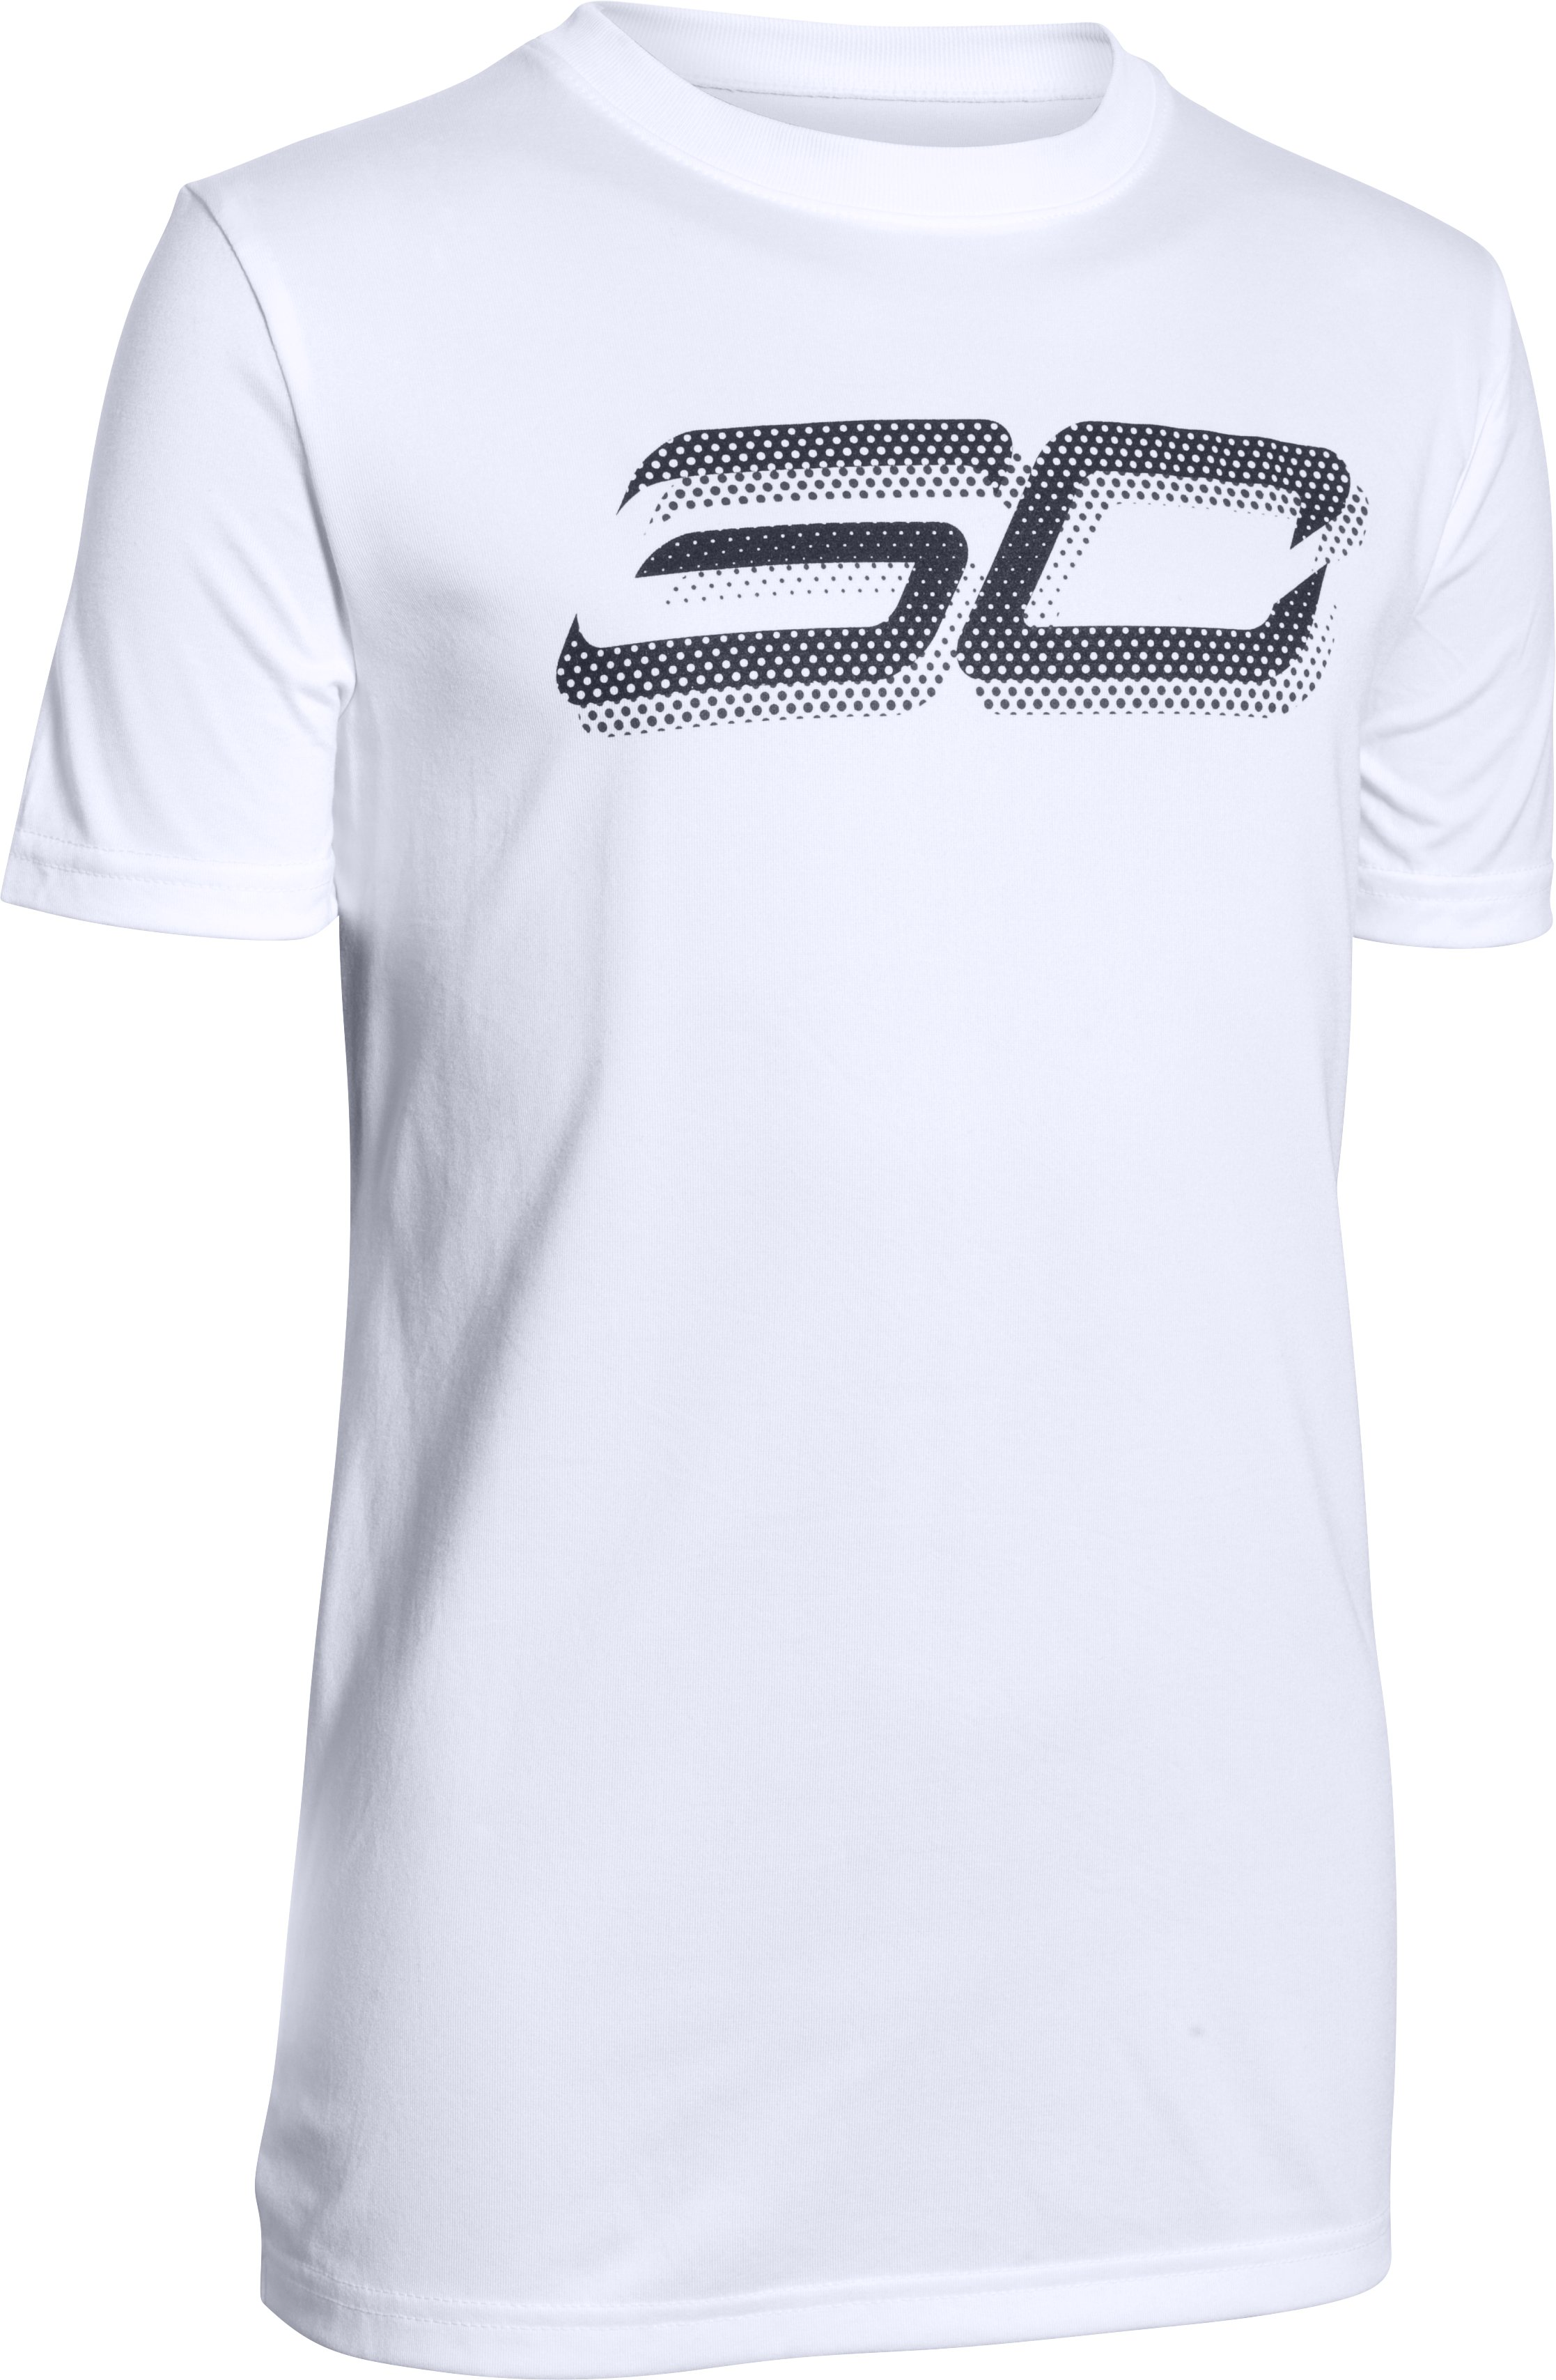 Boys' SC30 Branded T-Shirt, White, zoomed image